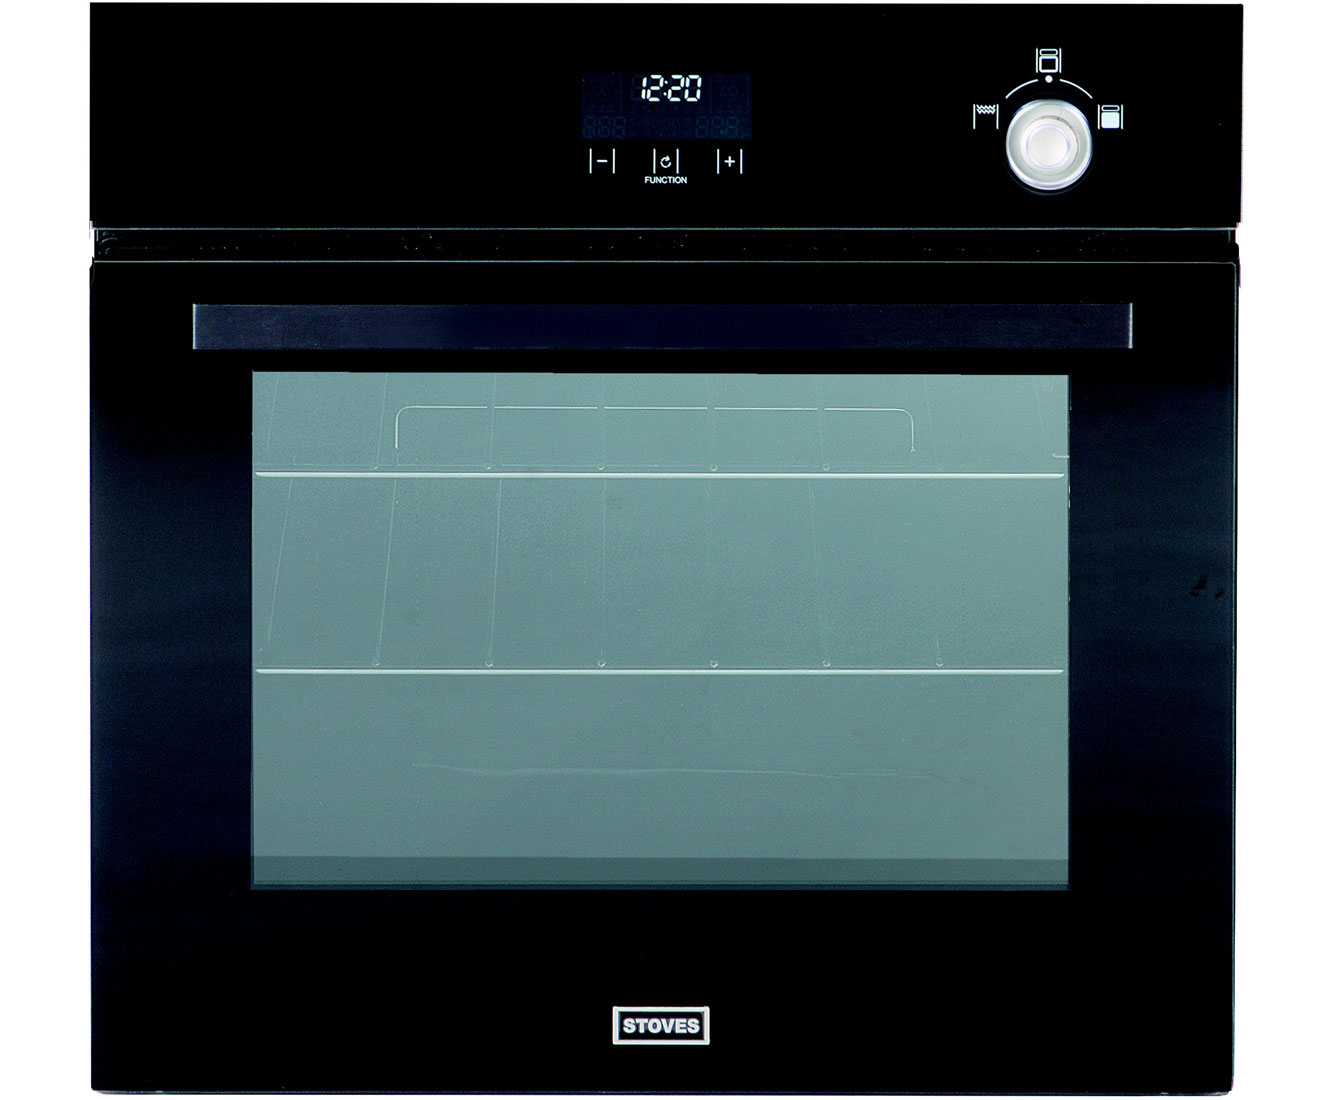 Stoves Professional SGB600MFSe Integrated Single Oven in Black